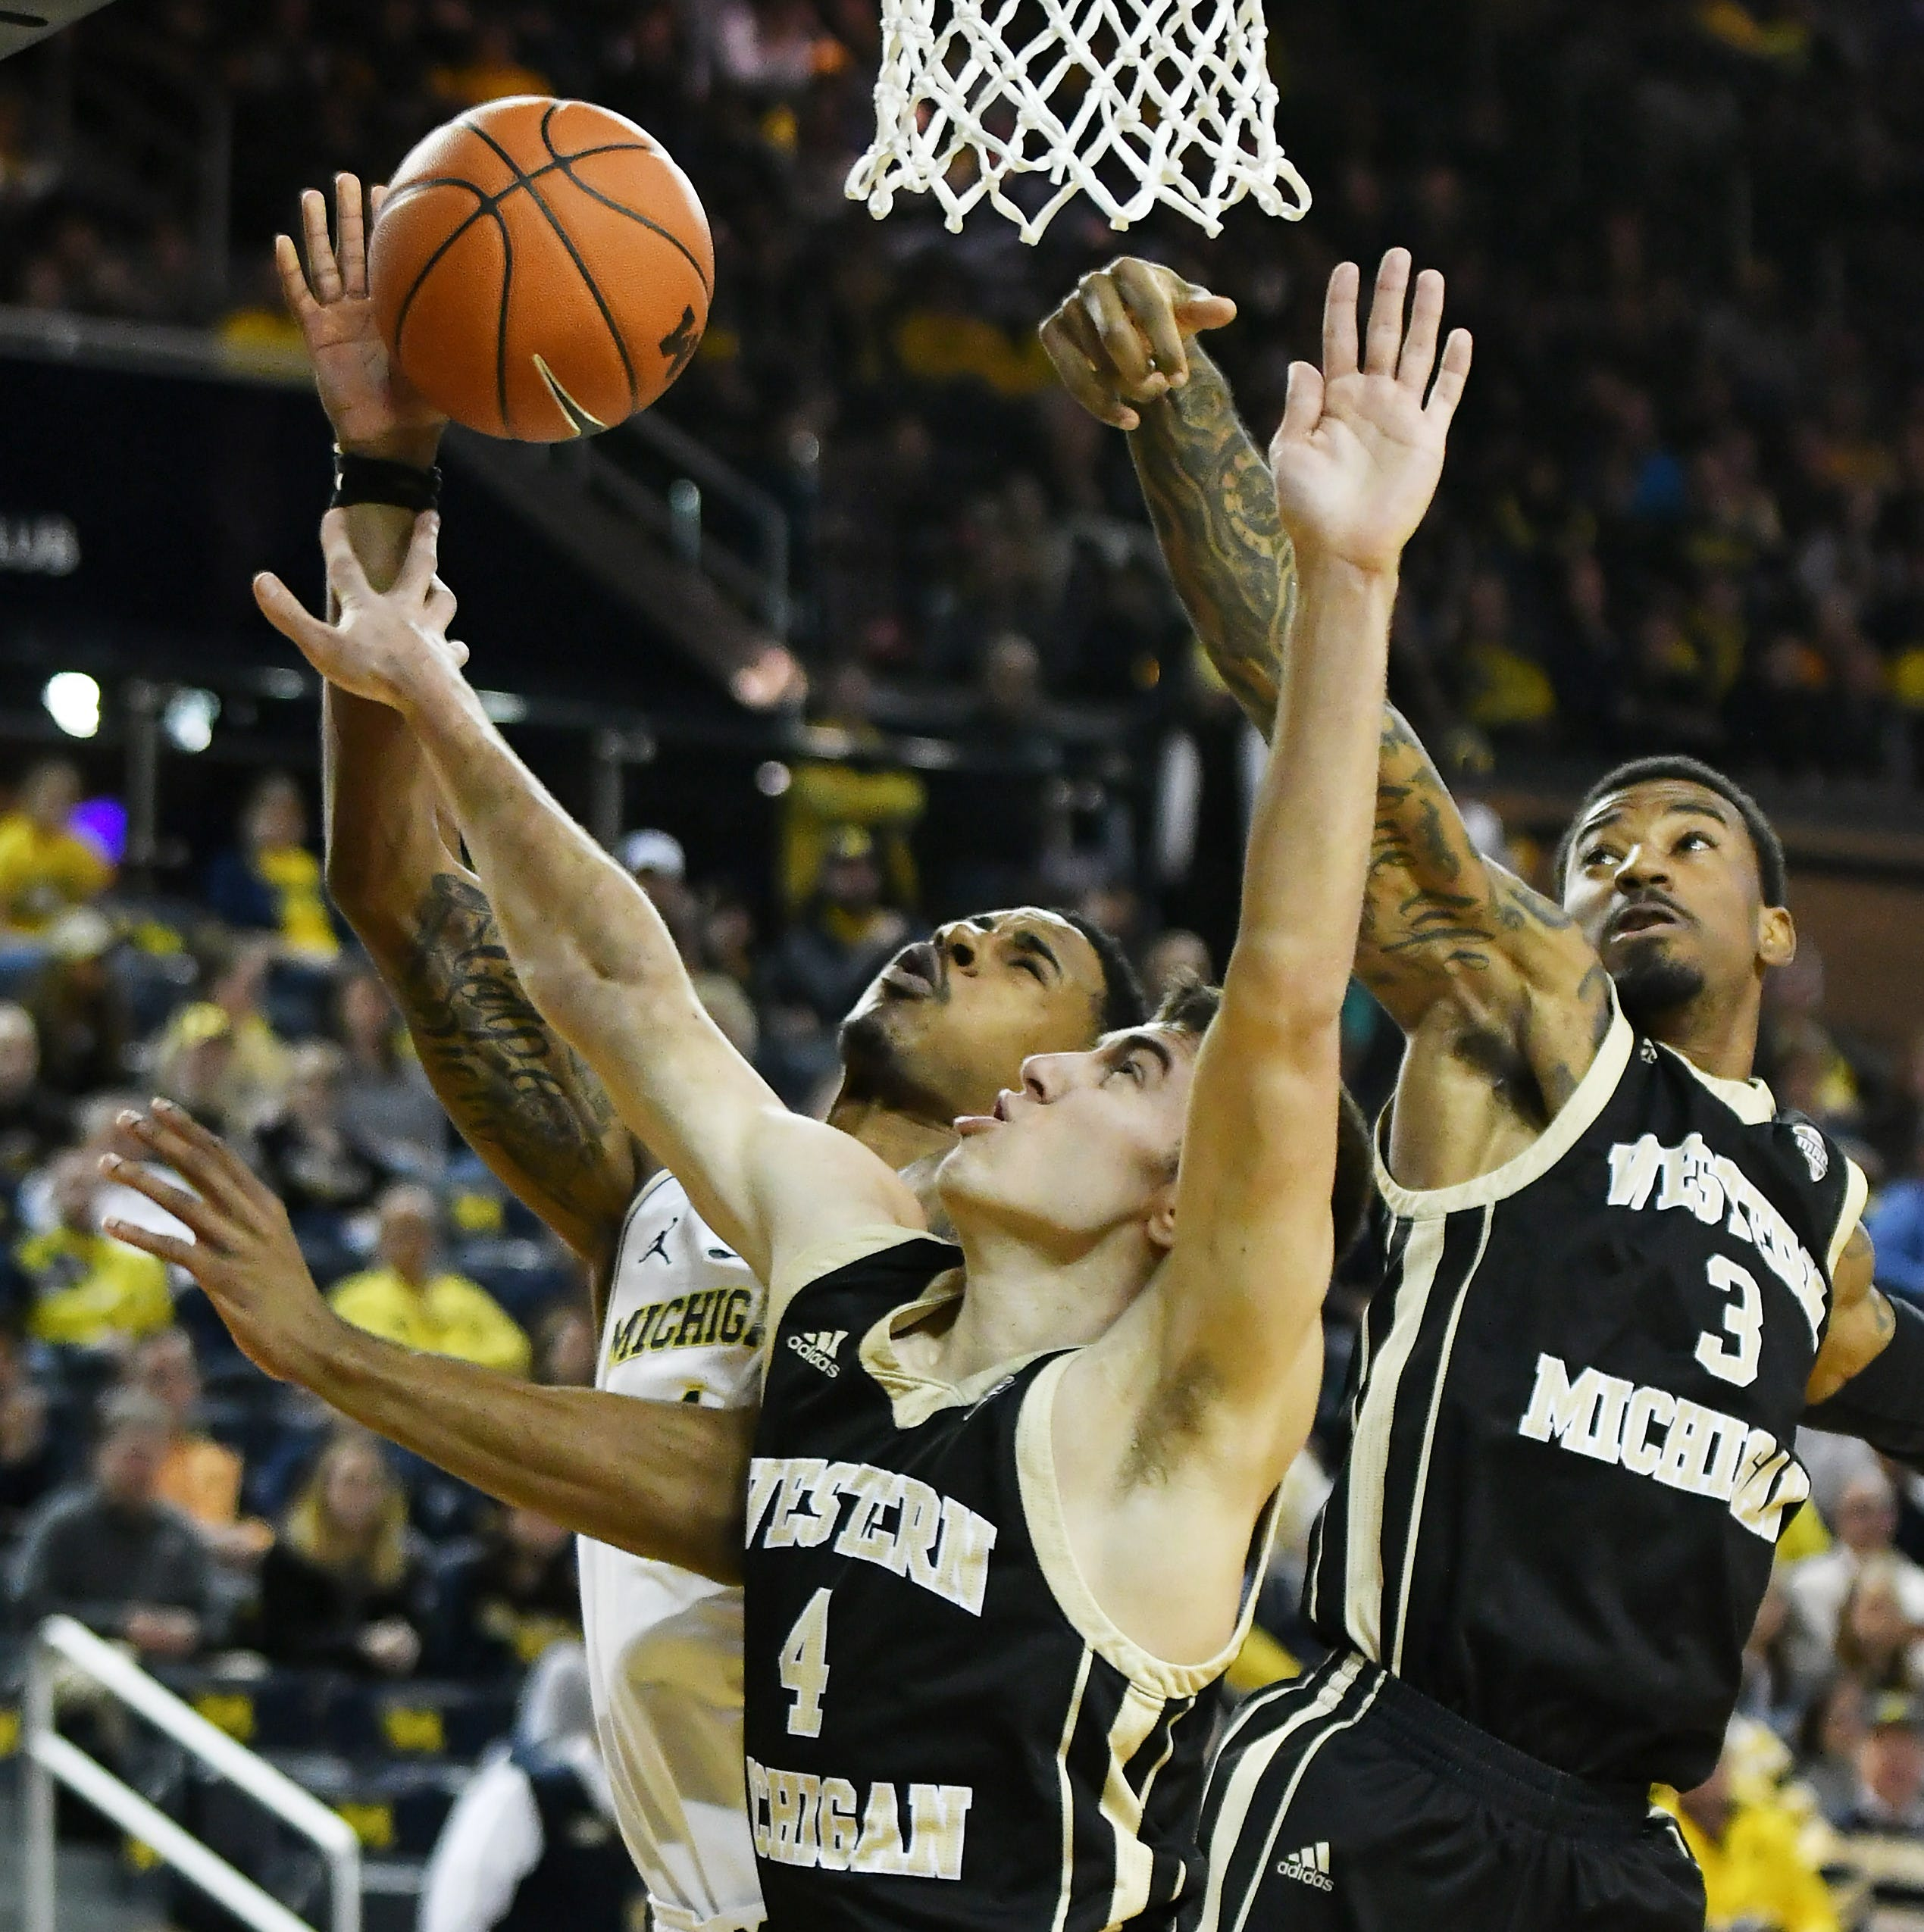 Undefeated Michigan survives sleepy first half to take down Western Michigan, 70-62